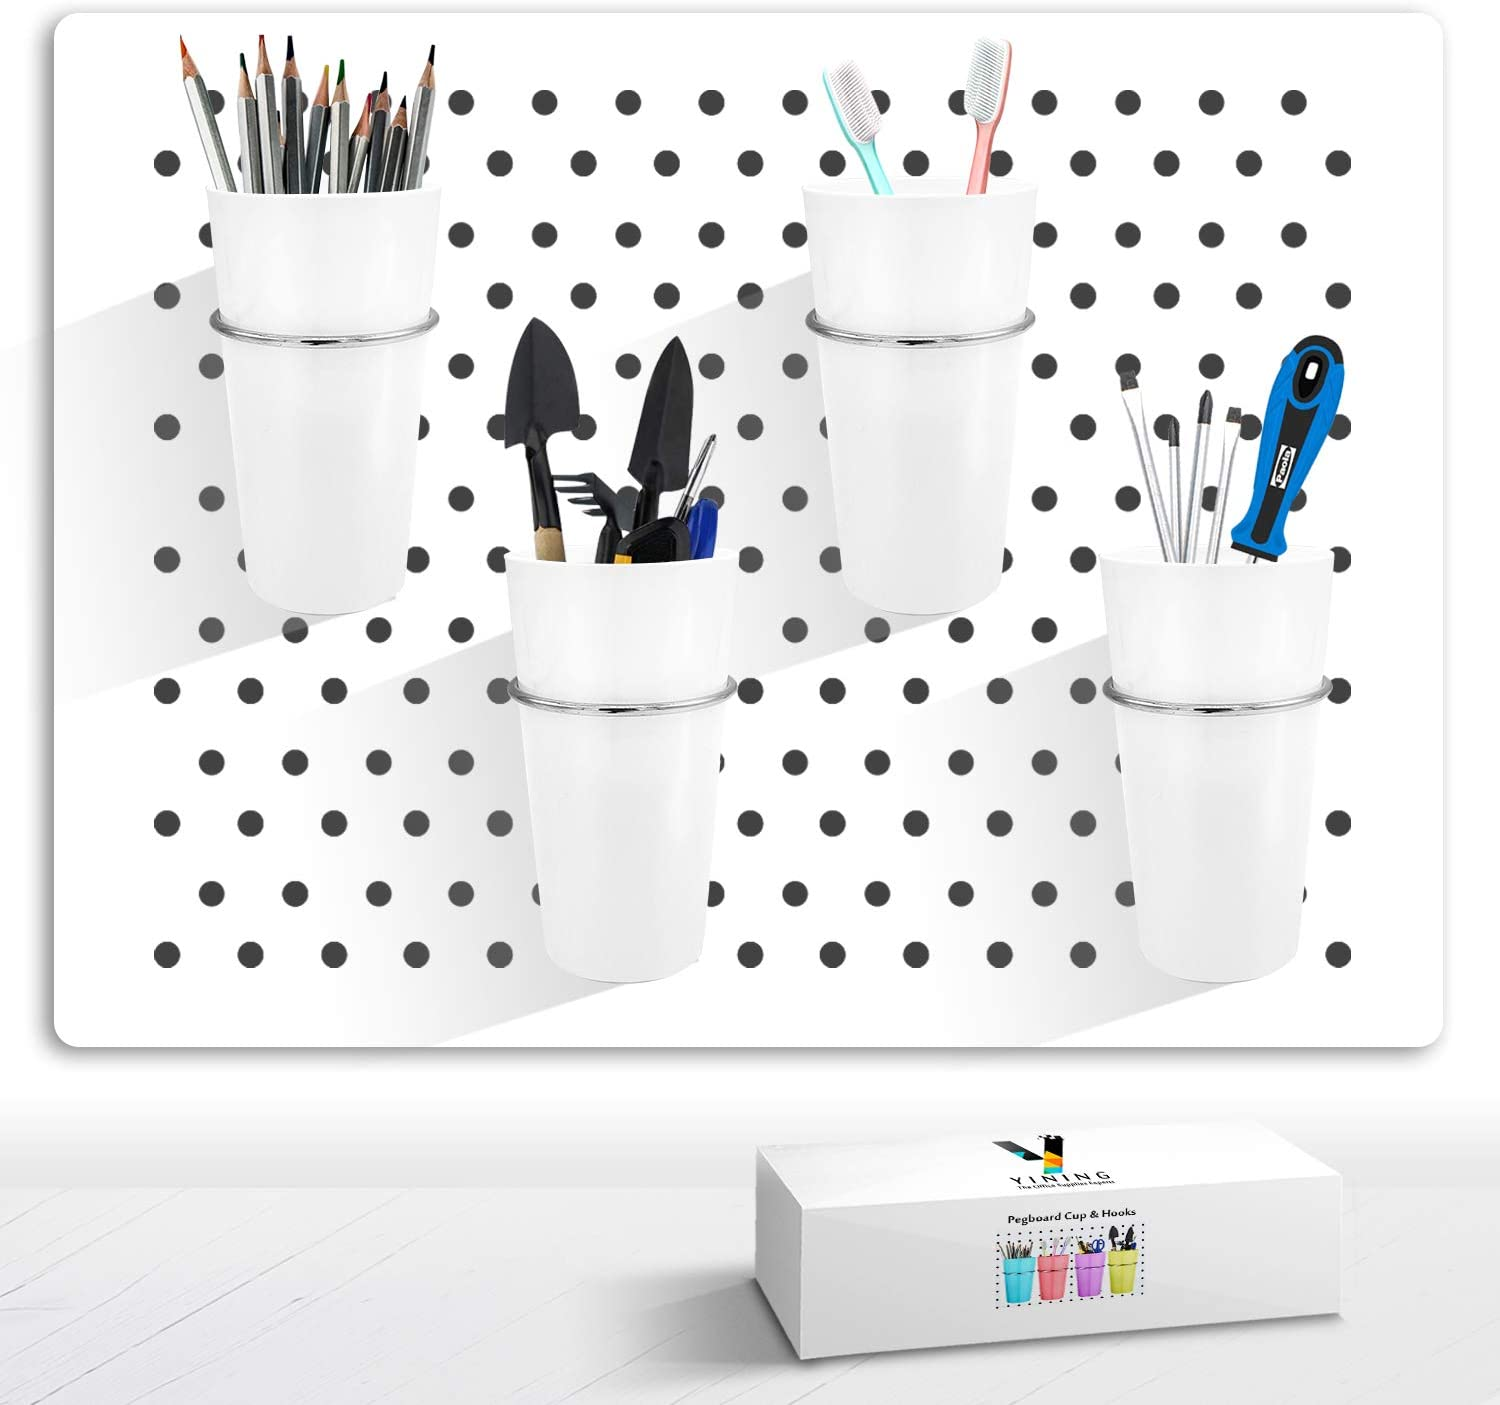 Pegboard Cup with Hooks, 4 Set Pegboard Bins Kit Storage Organizer Holder Accessories for Pegboard, Crafts, Garden, Washroom, Workshop, office desk (WHITE)